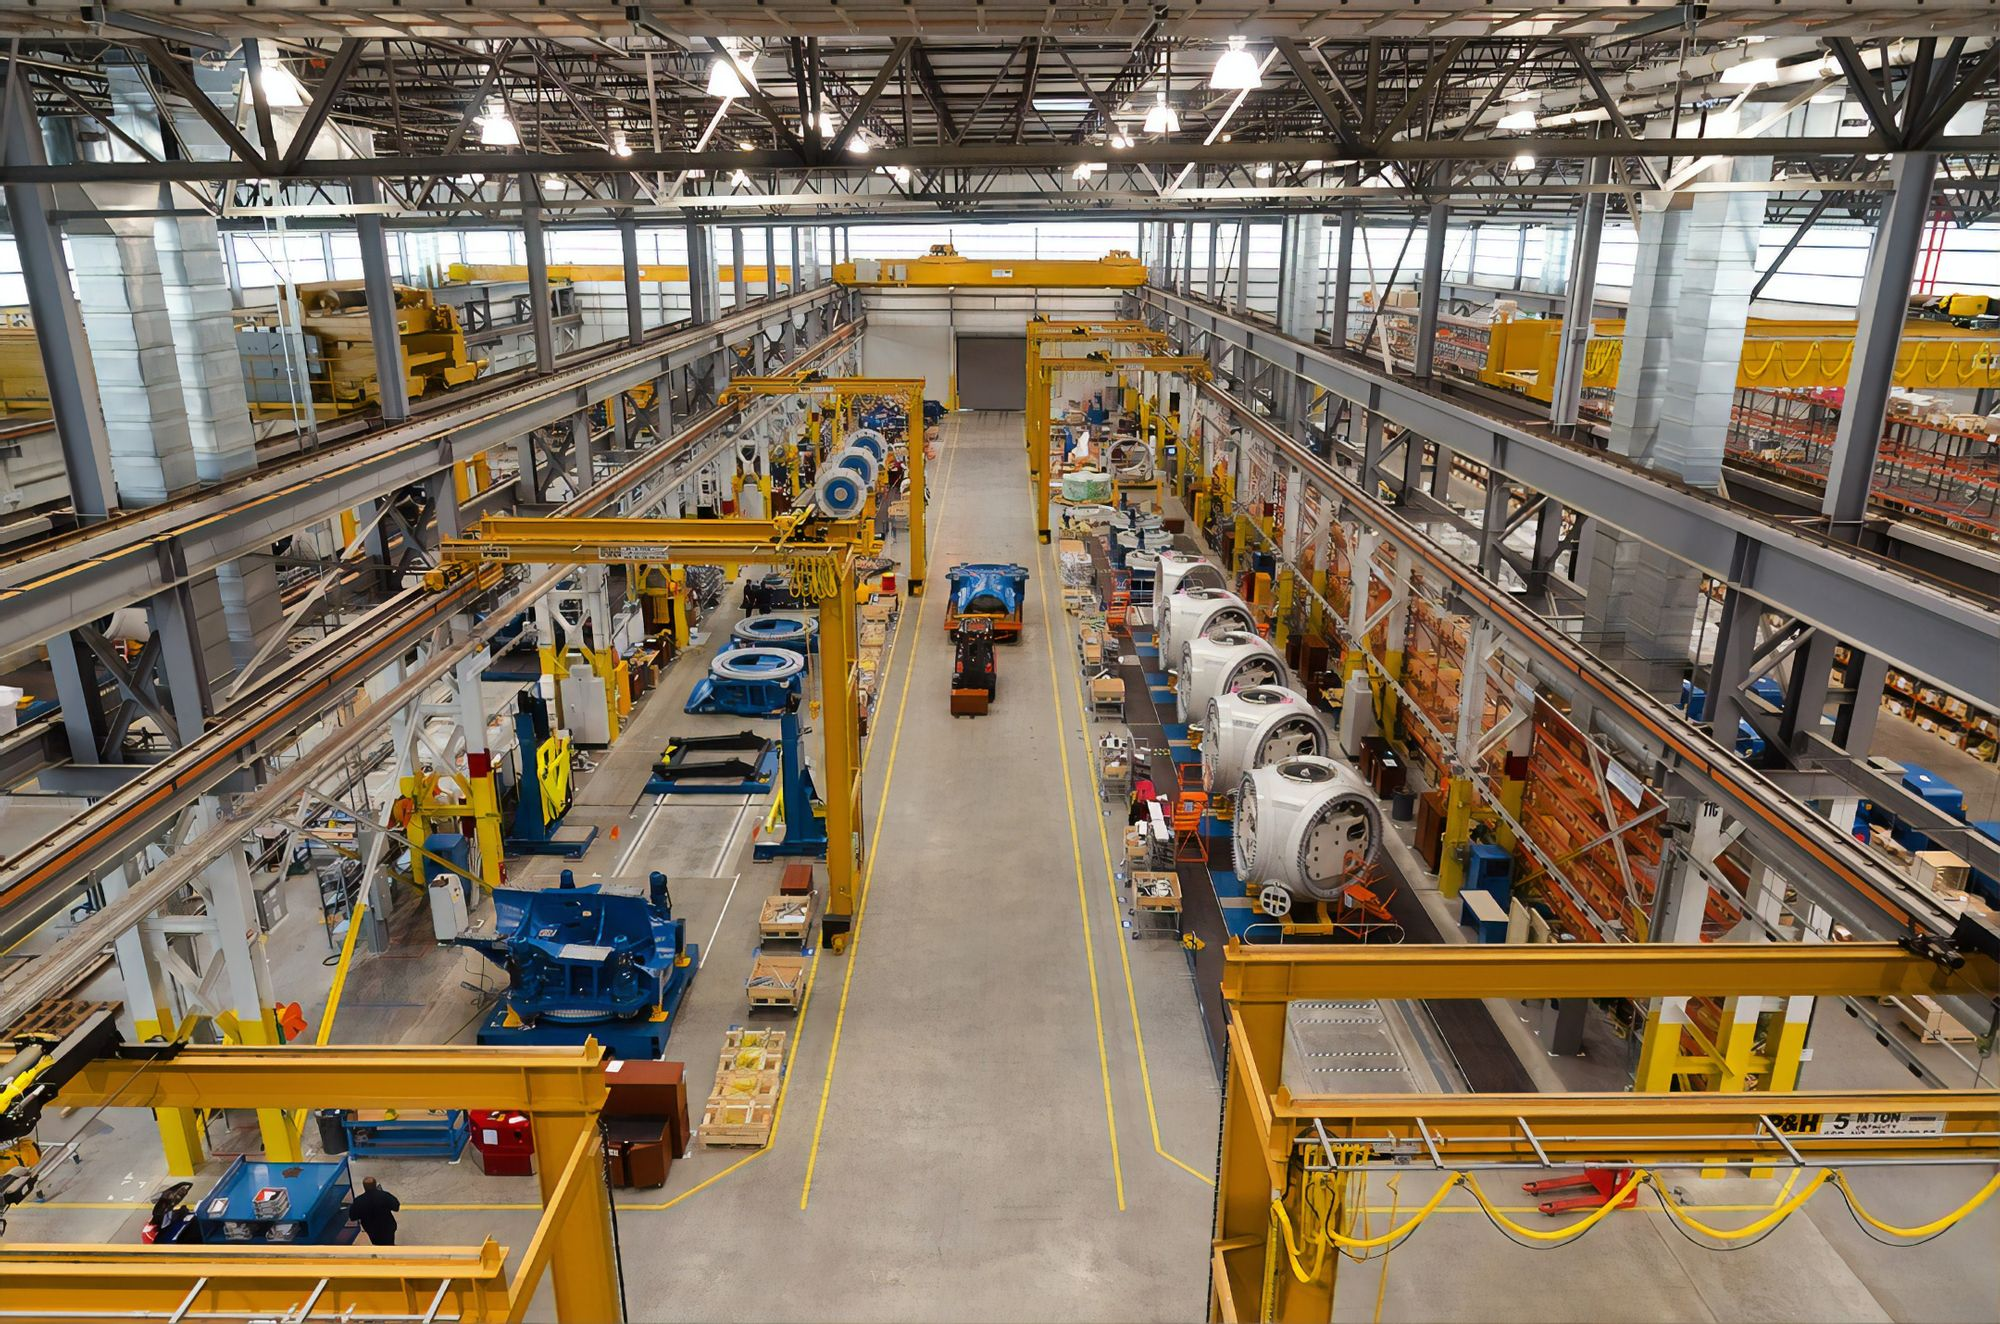 An elevated view of a manufacturing facility full of parts.